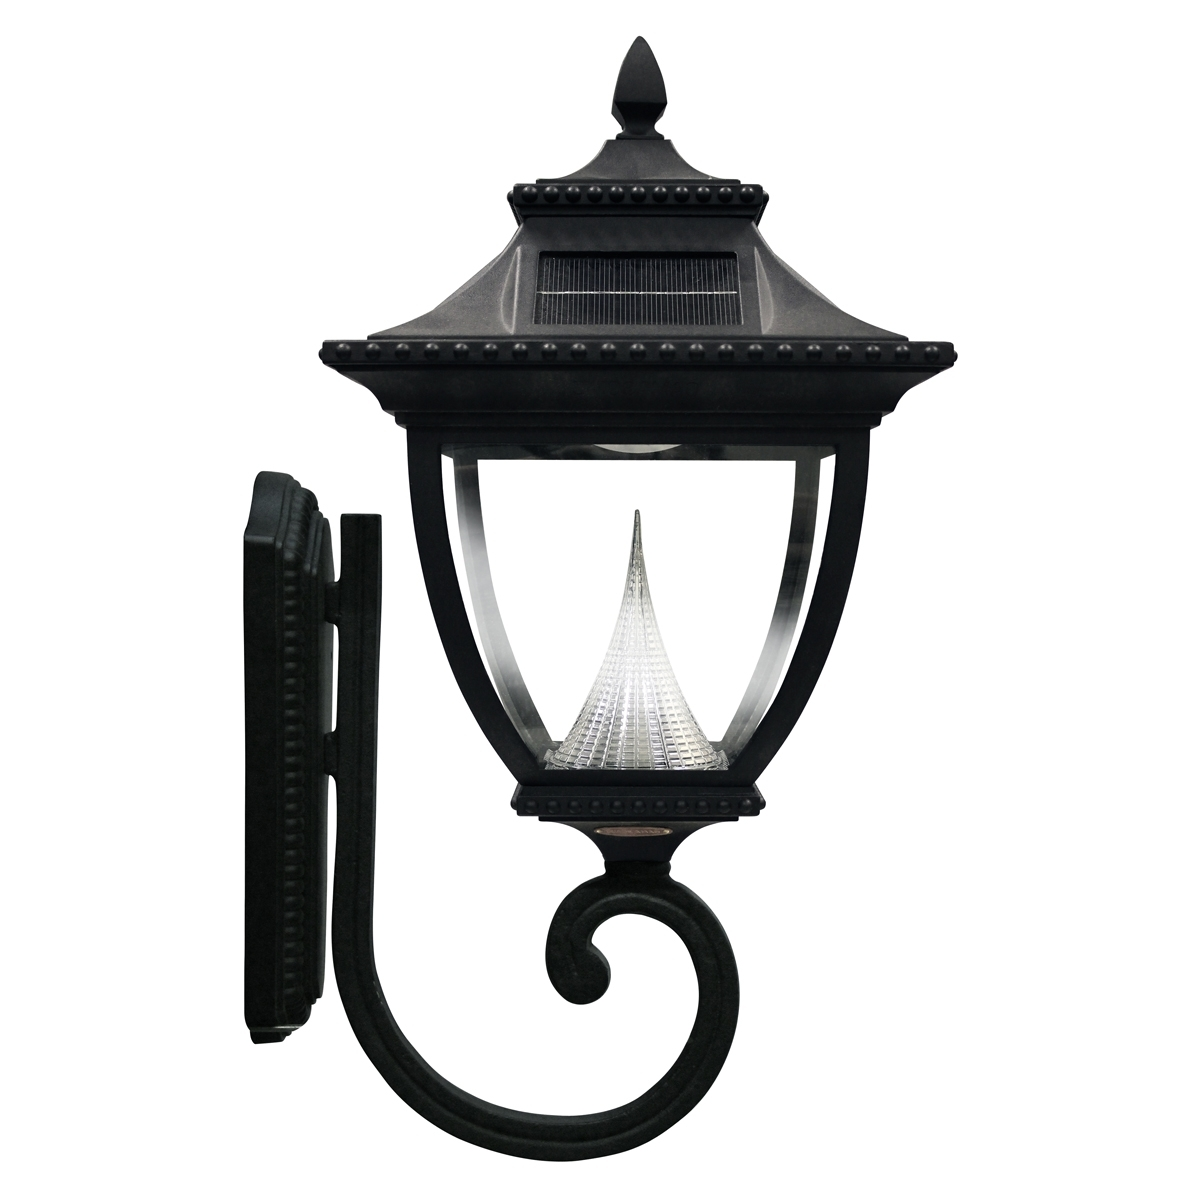 Outdoor Wall Lighting At Amazon Pertaining To Latest Outdoor Lighting: Amazing Solar Outdoor Sconces Solar Wall Mounted (View 14 of 20)